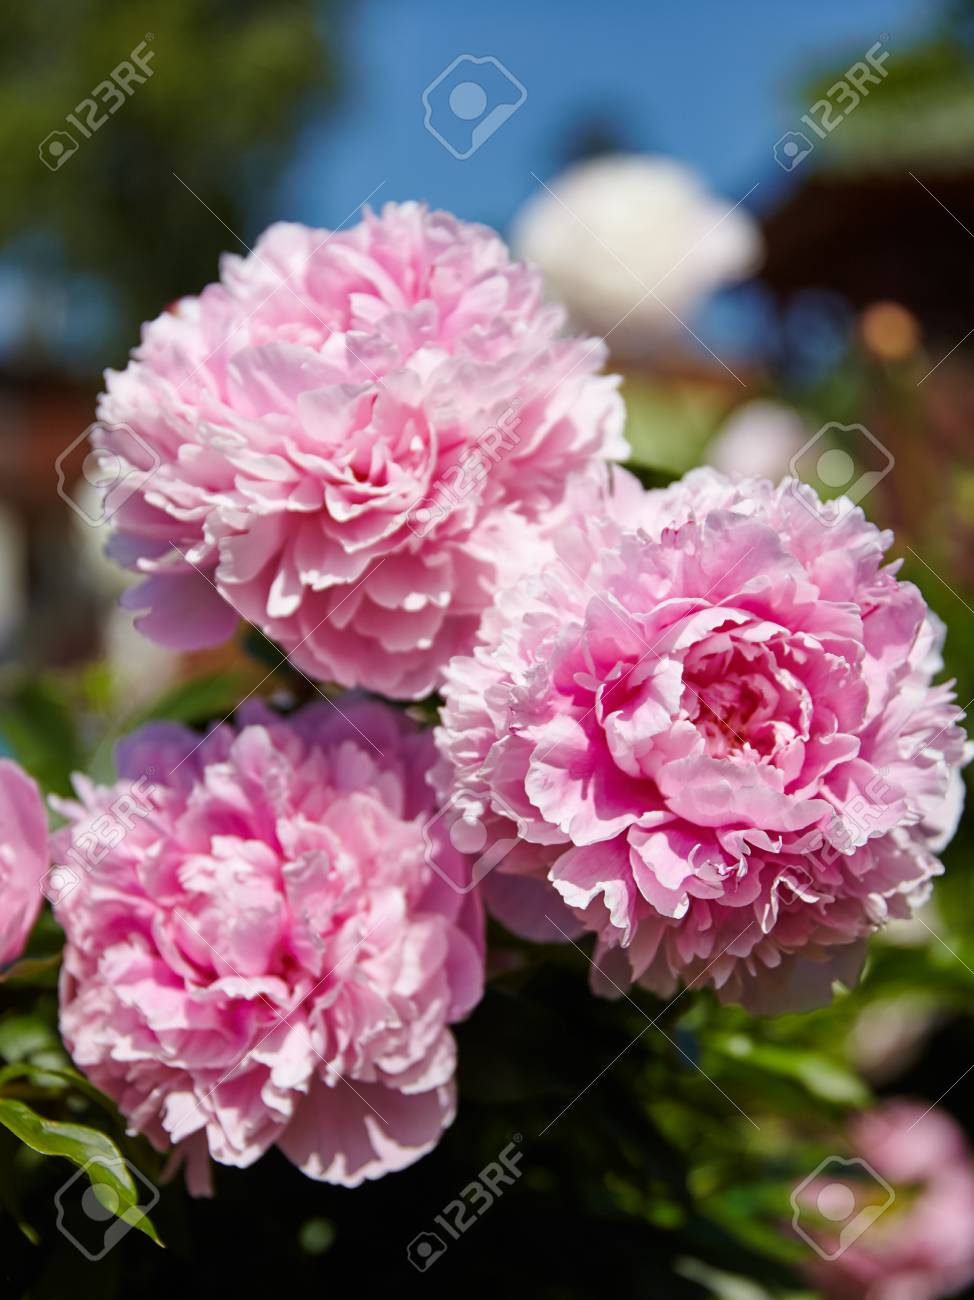 Bright Large Flowers And Buds Of Peonies In A Soft Pink Color Stock